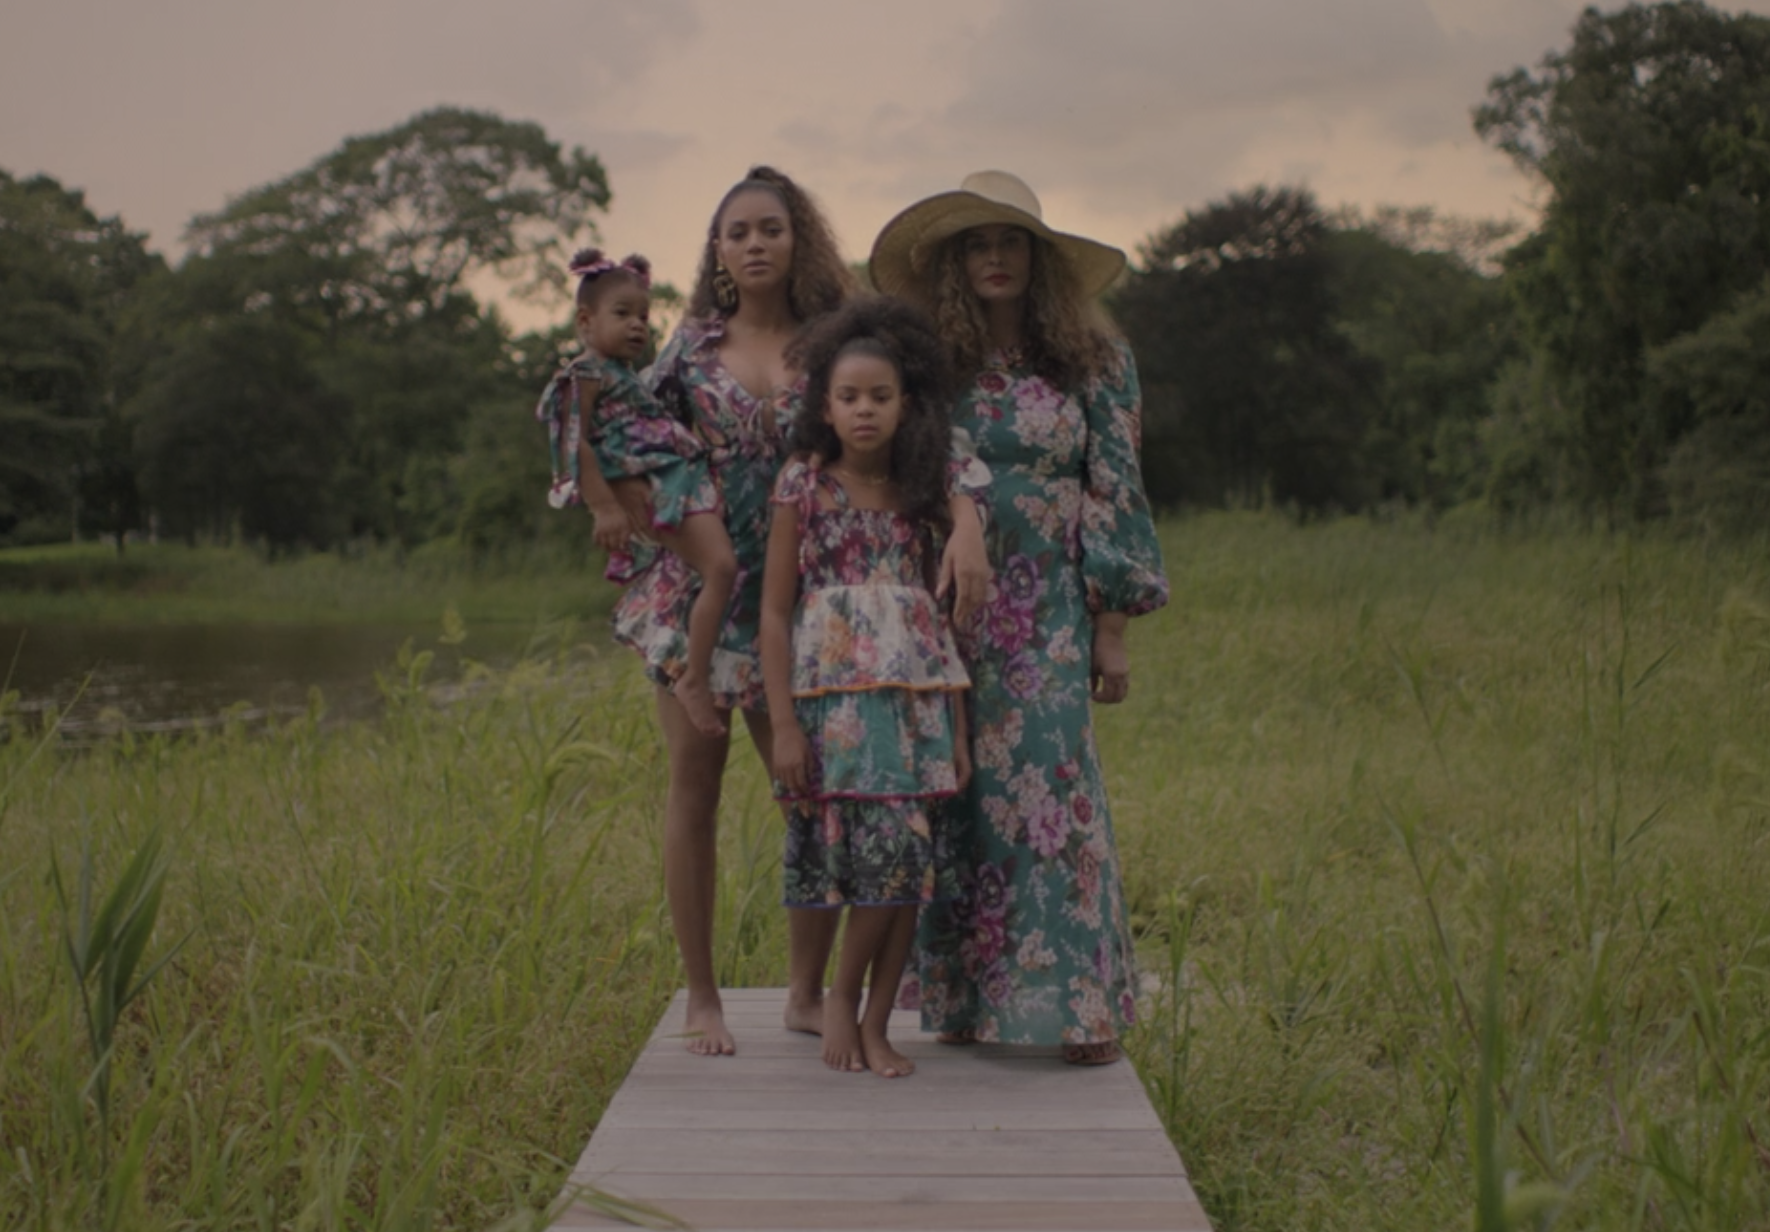 Tina Knowles, Beyoncé, Blue Ivy, and Rumi standing together in matching floral outfits